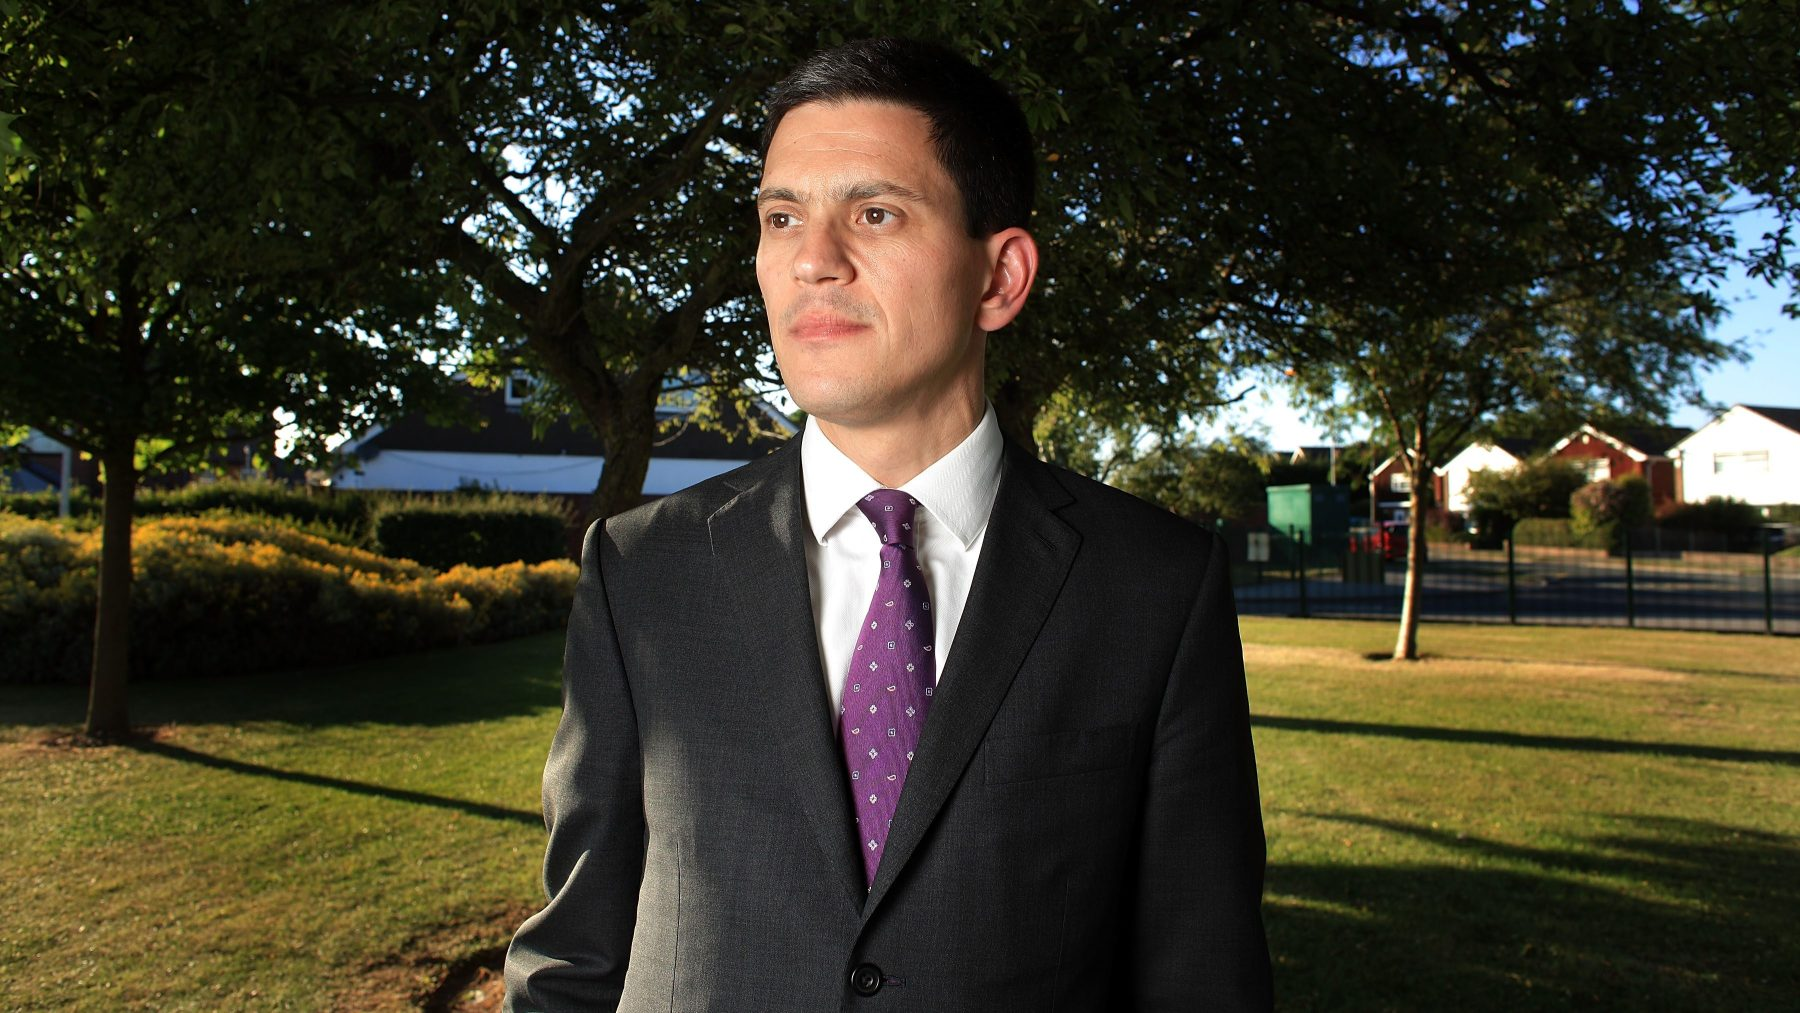 David Miliband poses for a portrait on June 24, 2010 in Wirral, England. (Christopher Furlong/Getty Images)